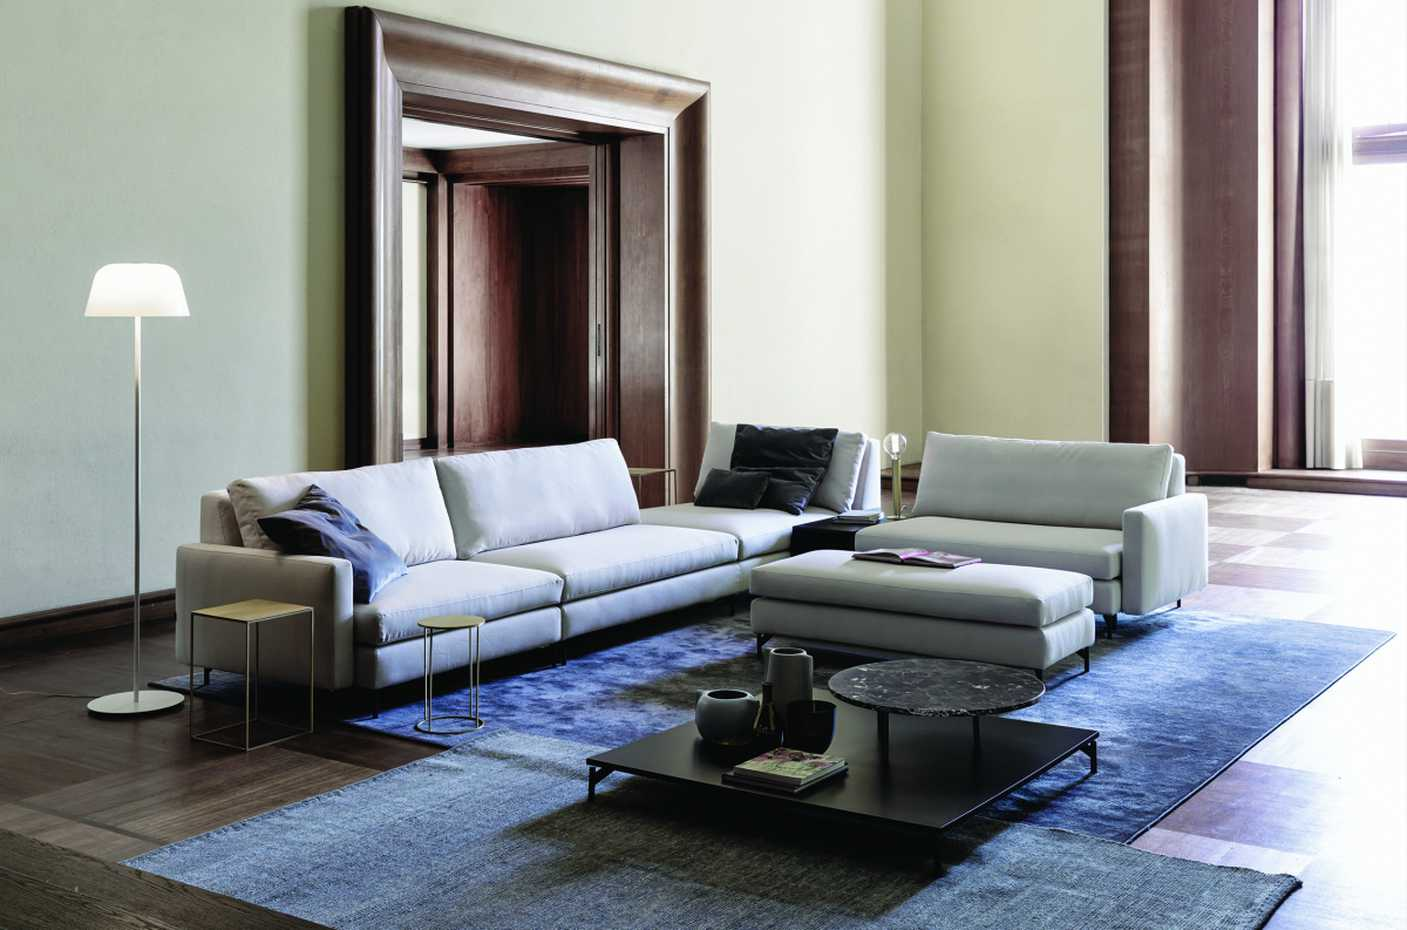 Nordic by Vibieffe product image 2